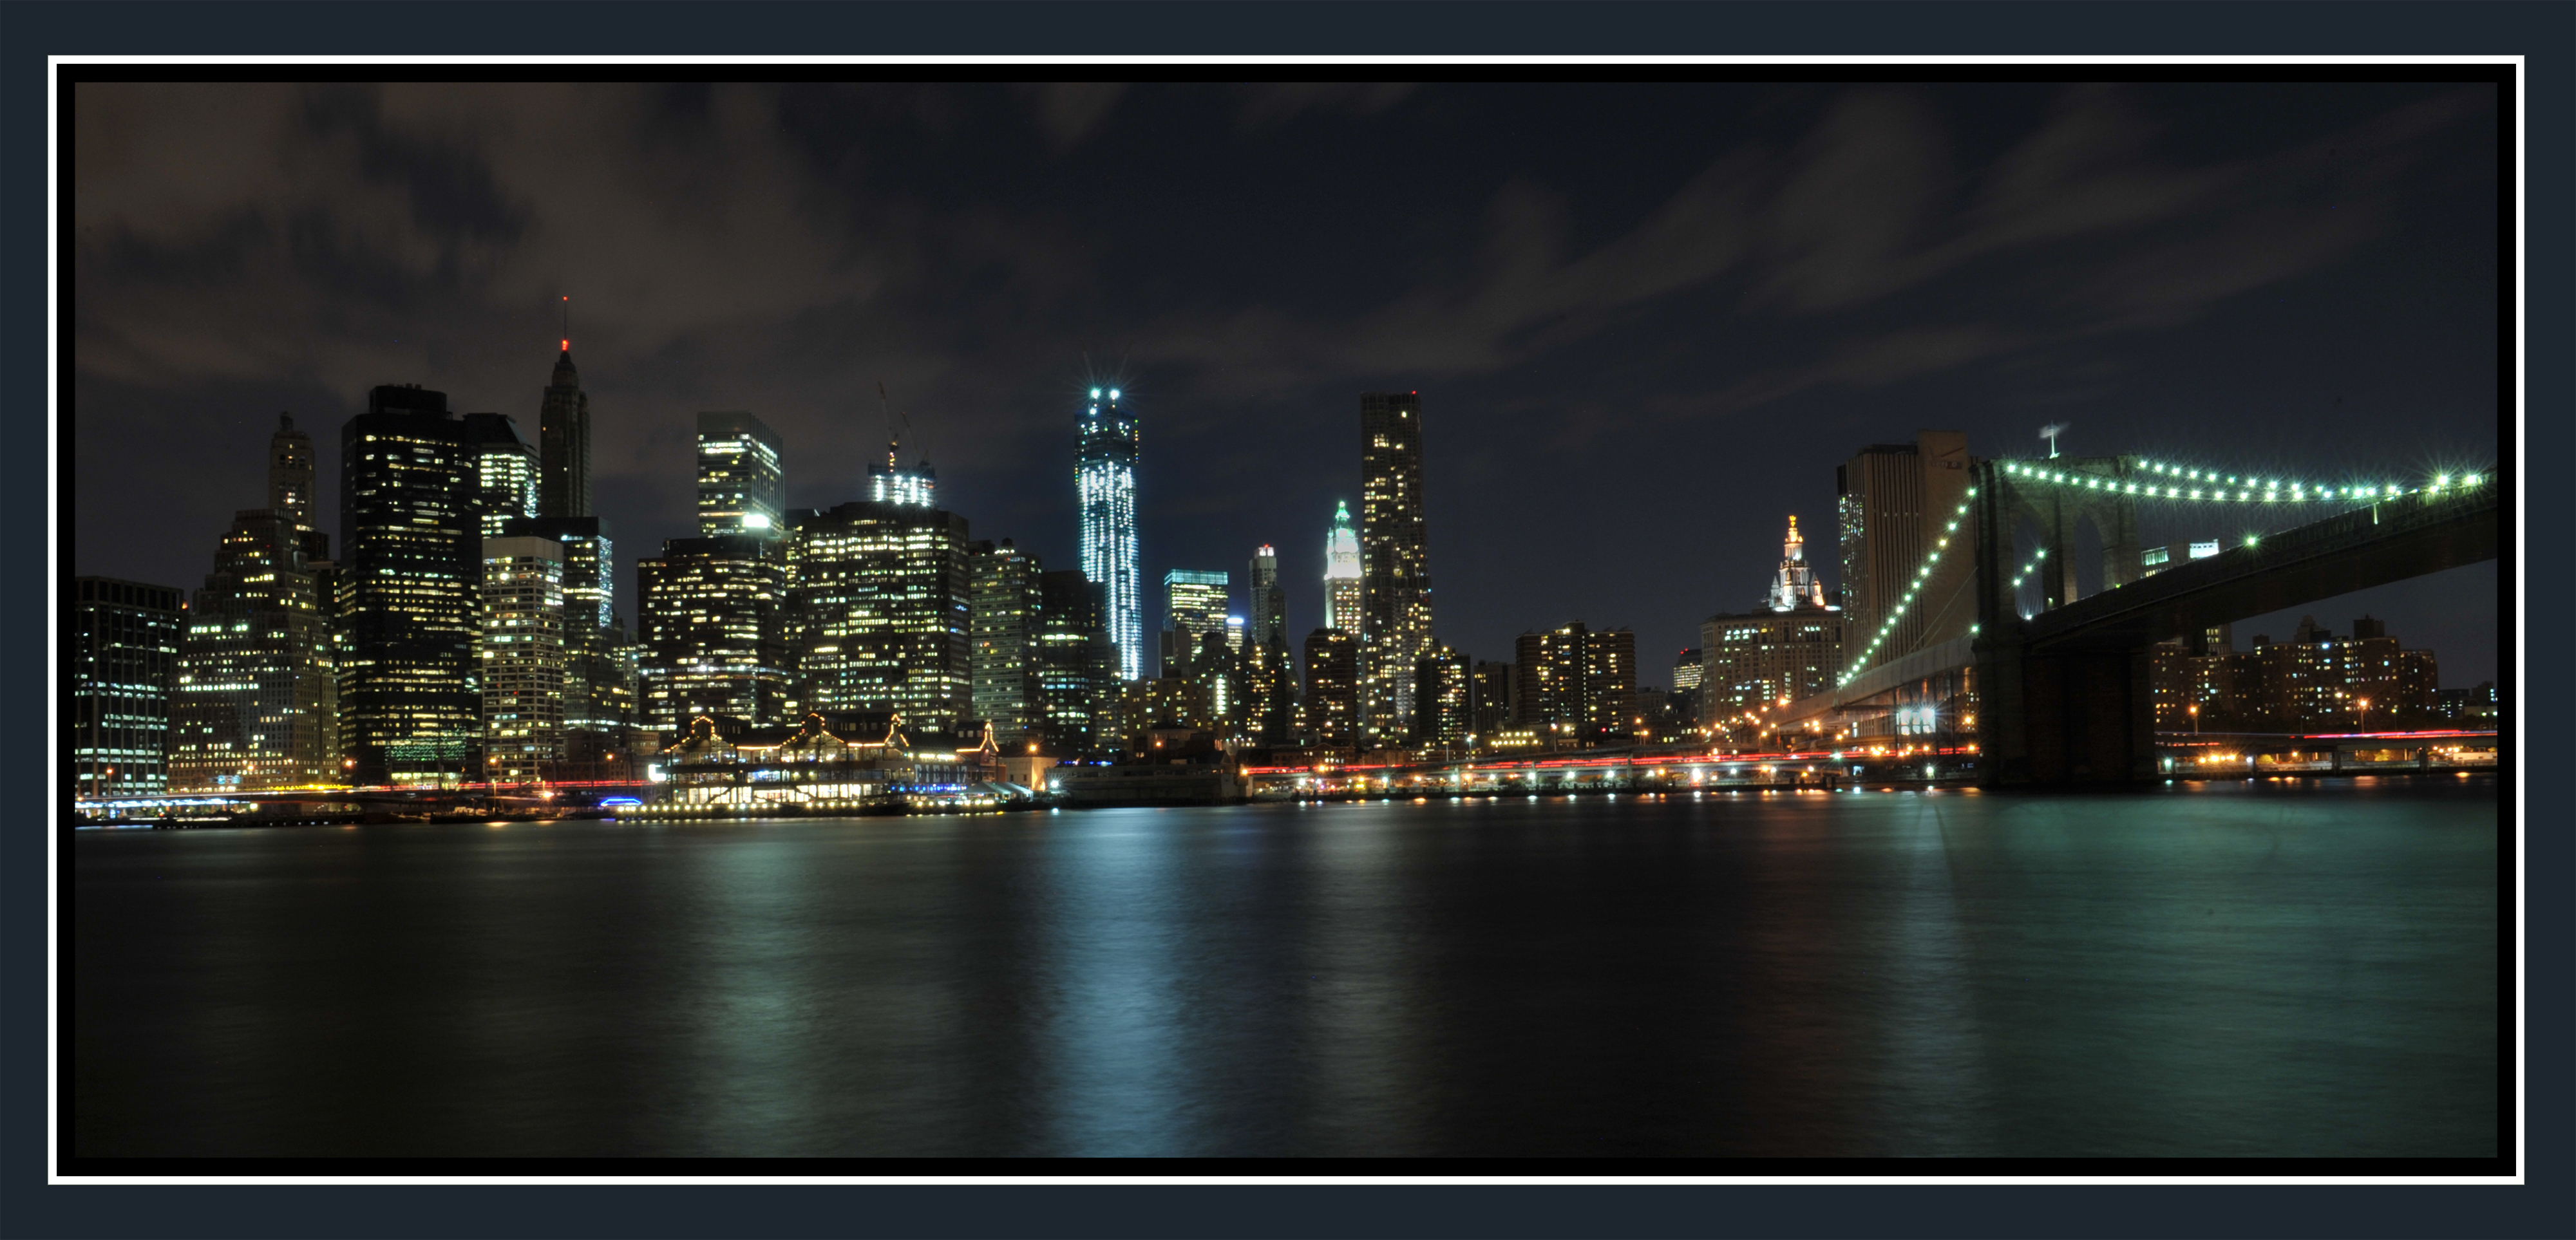 Illustrative_New York At Night_Kip_Cothran